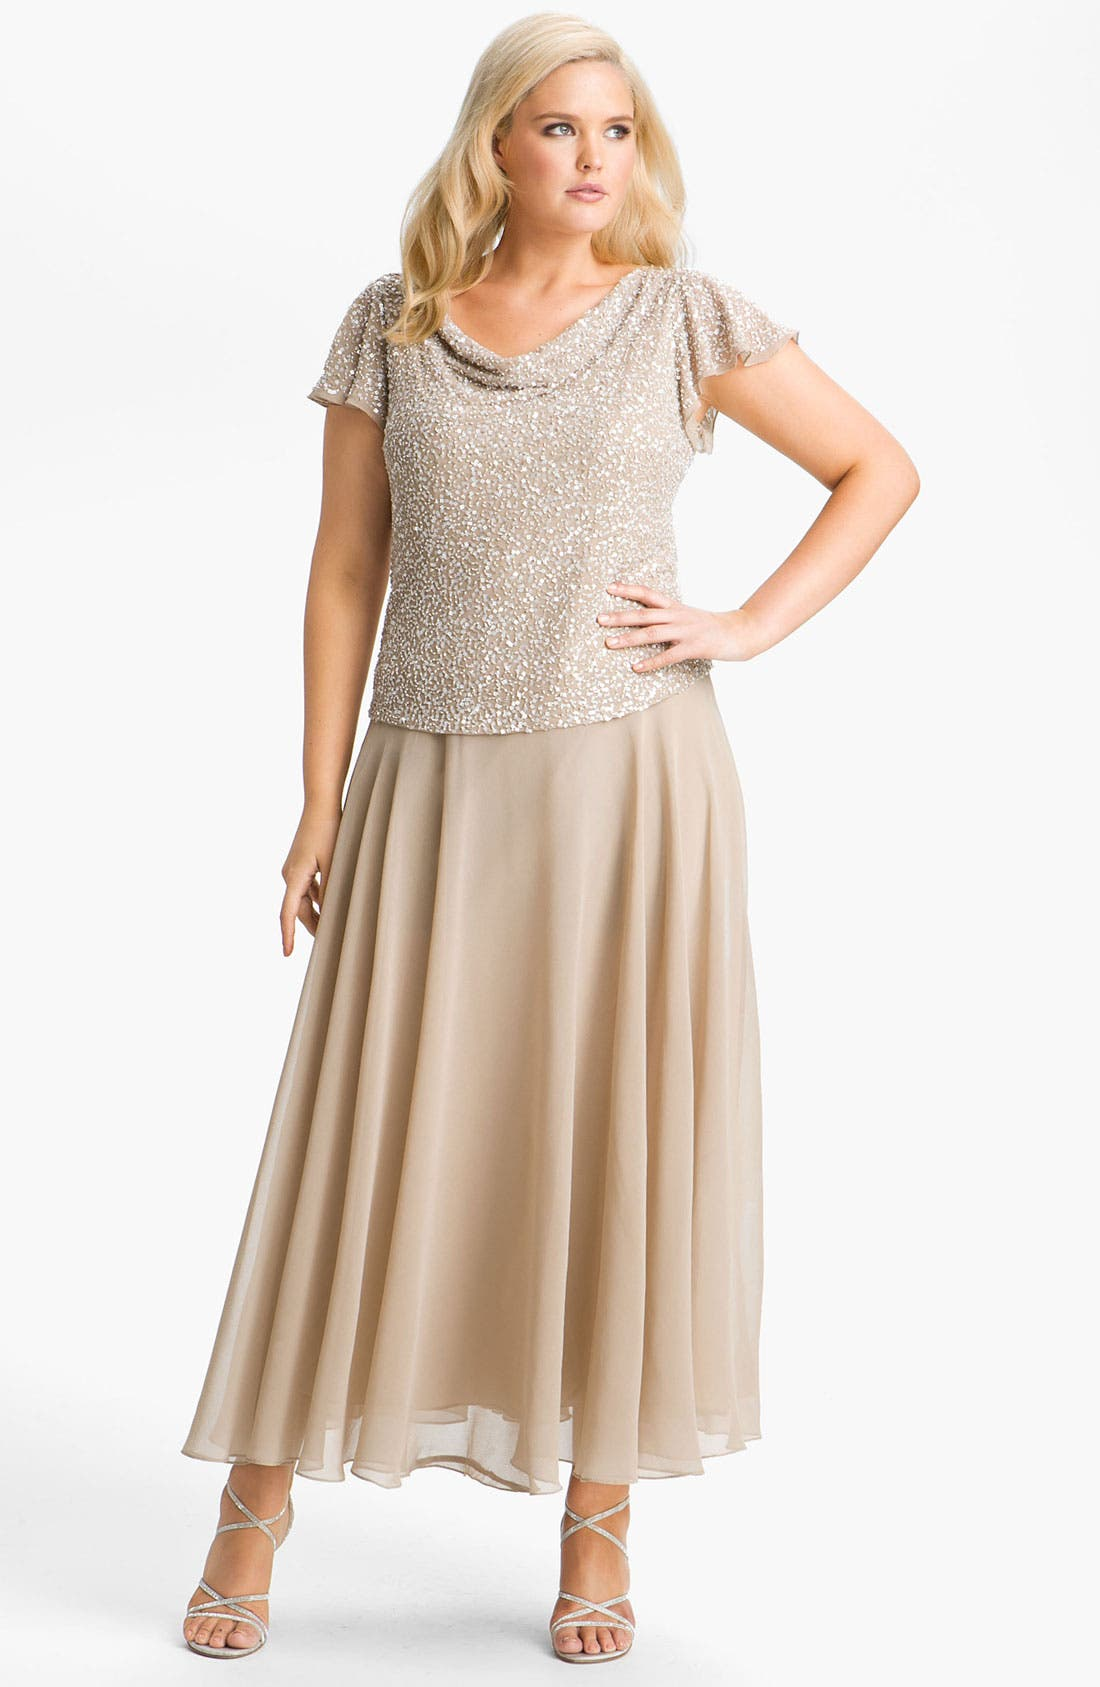 Alternate Image 1 Selected - J Kara Sequin Flutter Sleeve Bodice Chiffon Gown (Plus)